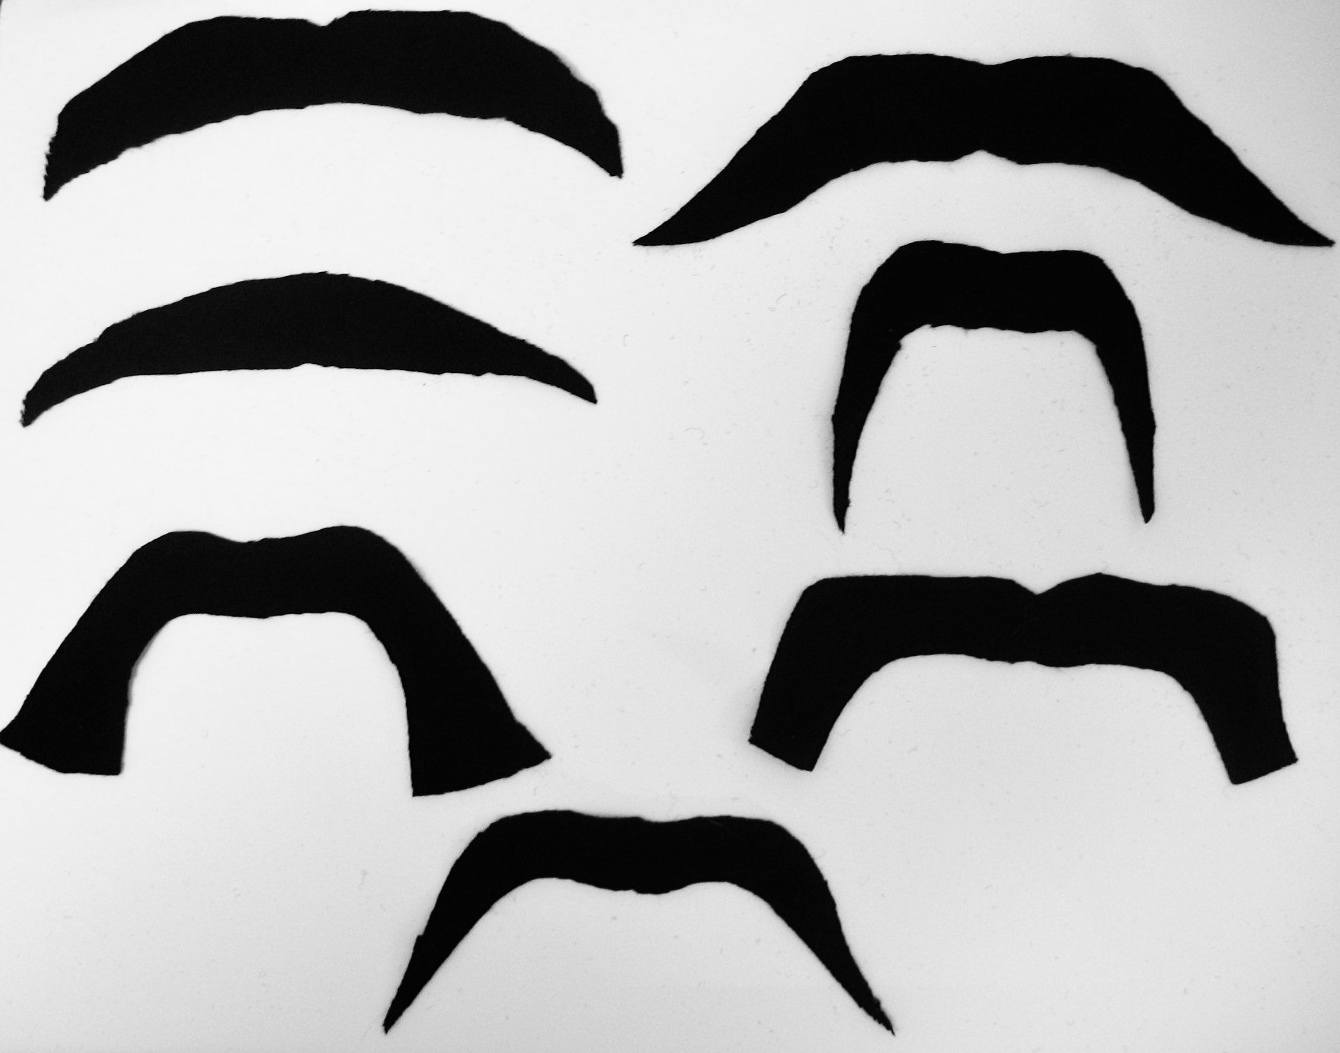 Free Curly Mustache Cliparts, Download Free Clip Art, Free Clip Art.